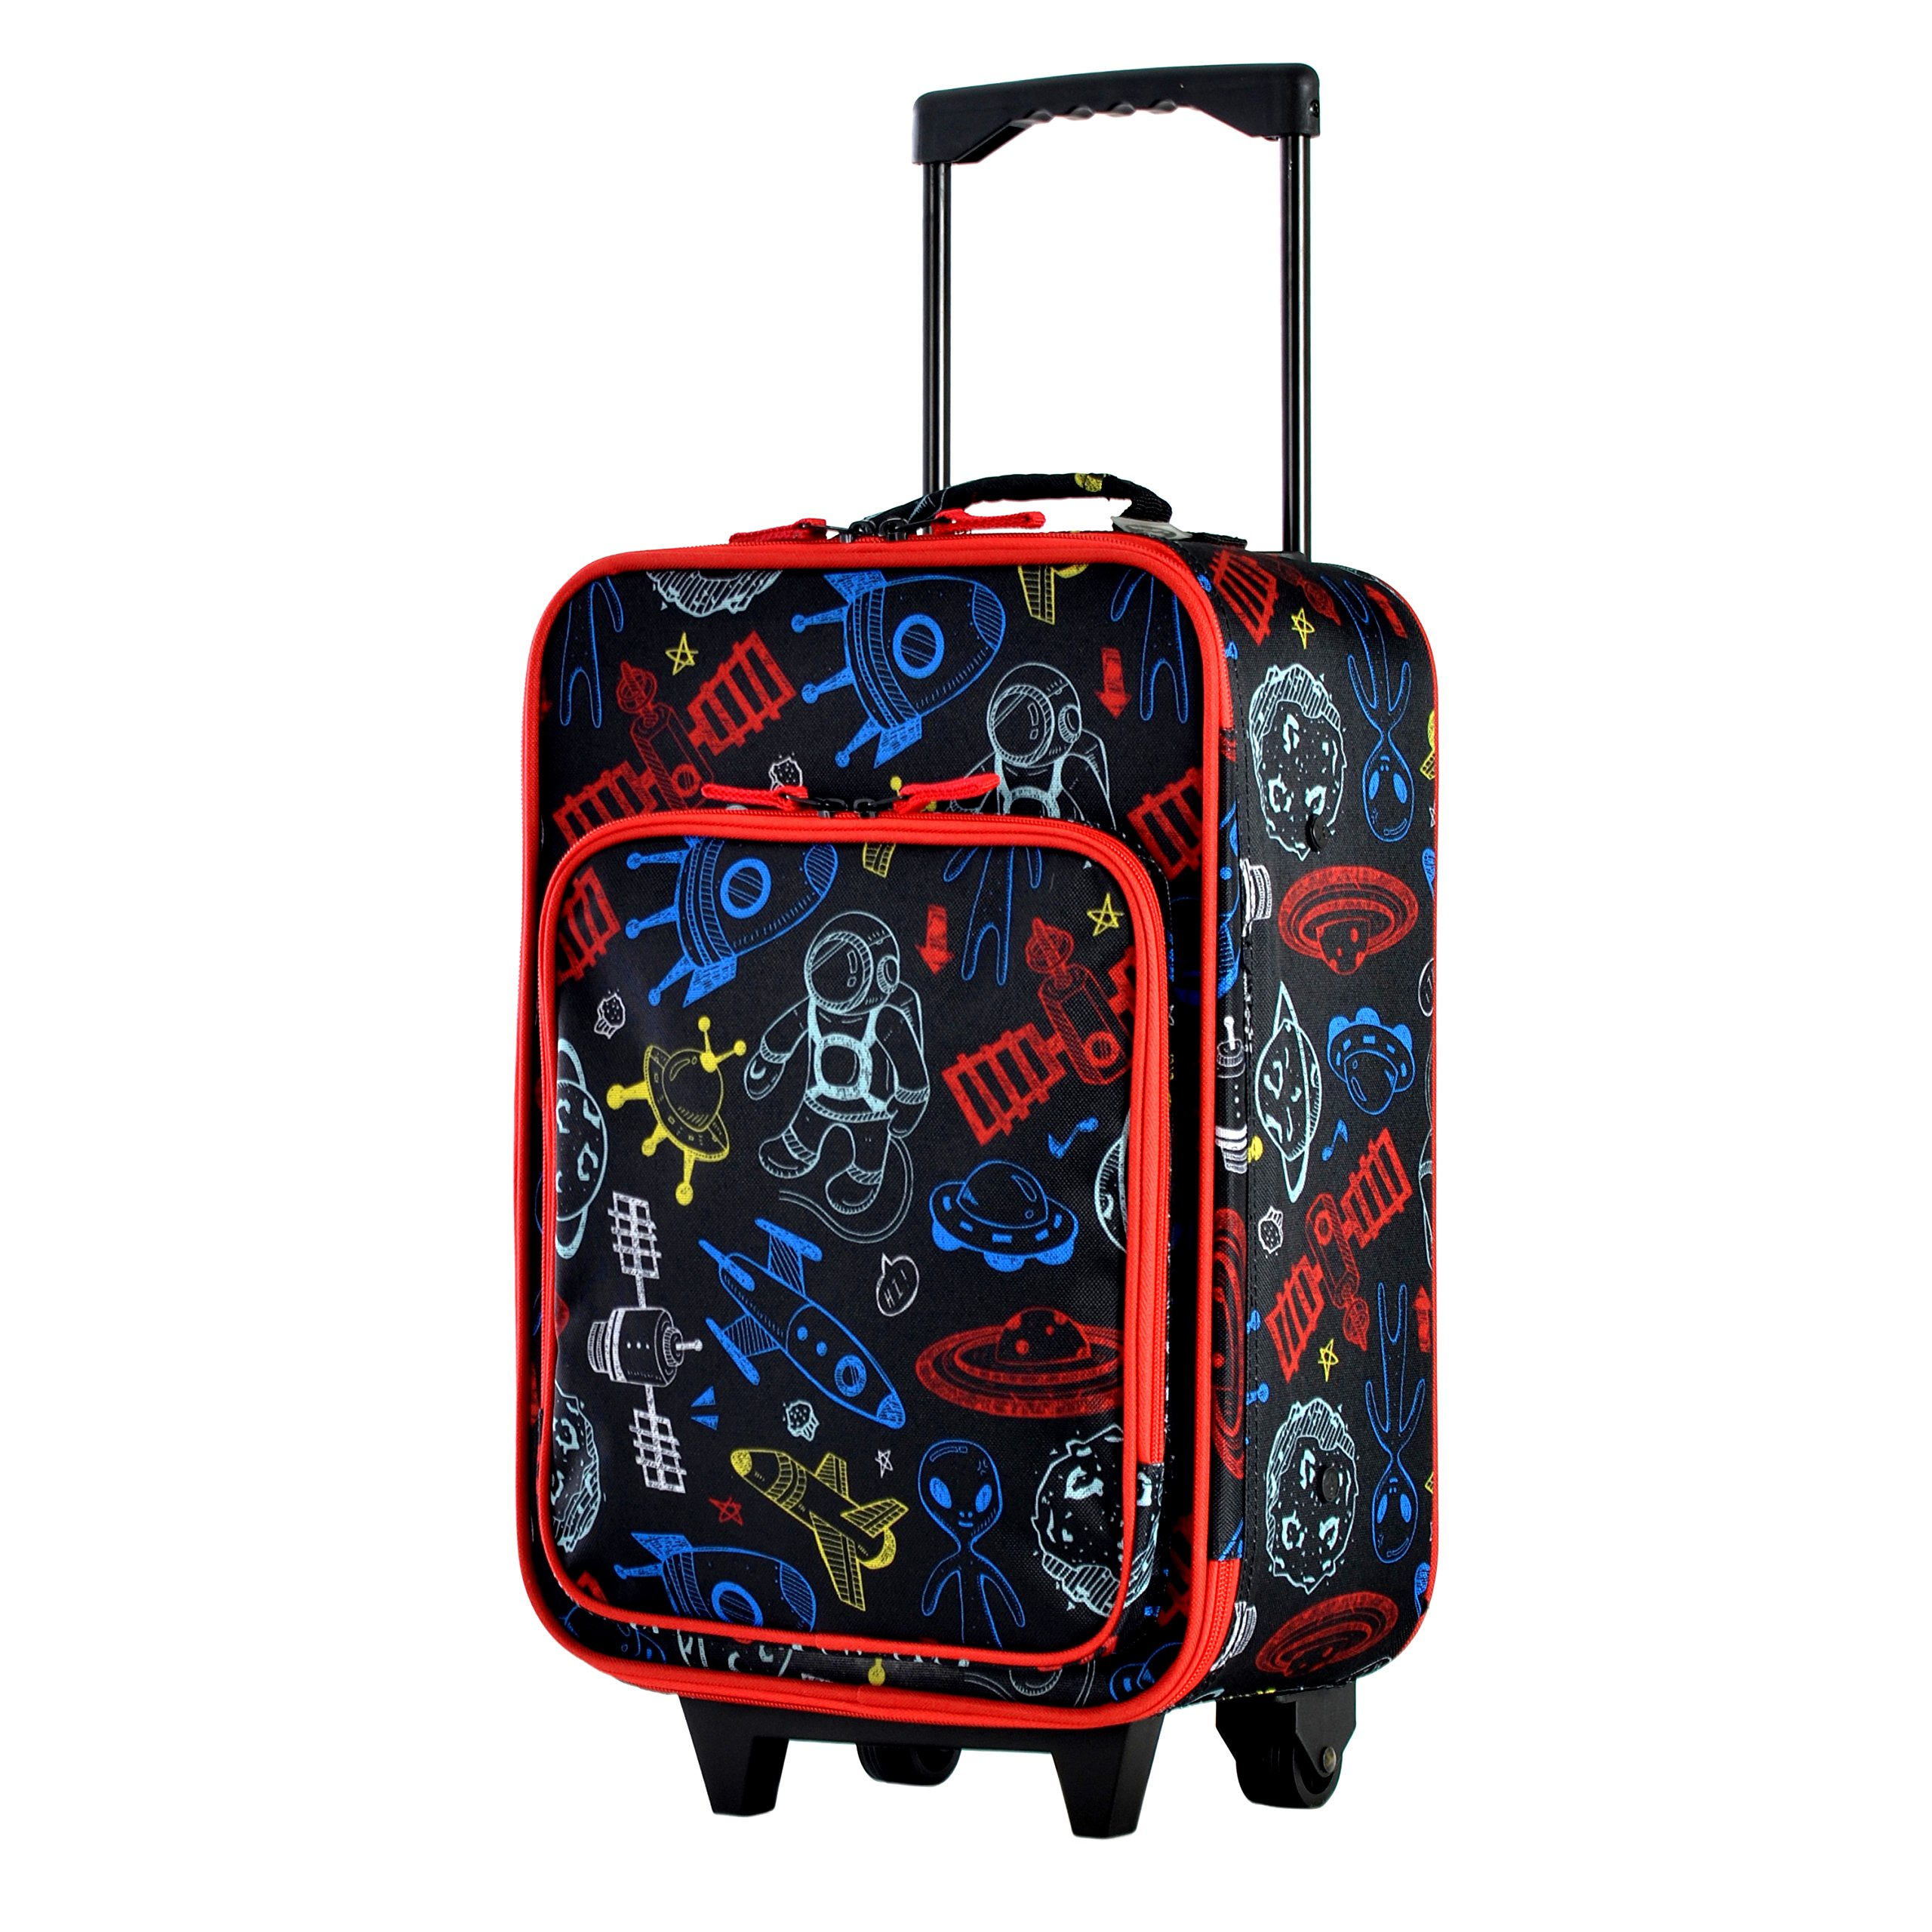 Olympia Kids 17 Inch Carry-On Luggage, Black, One Size